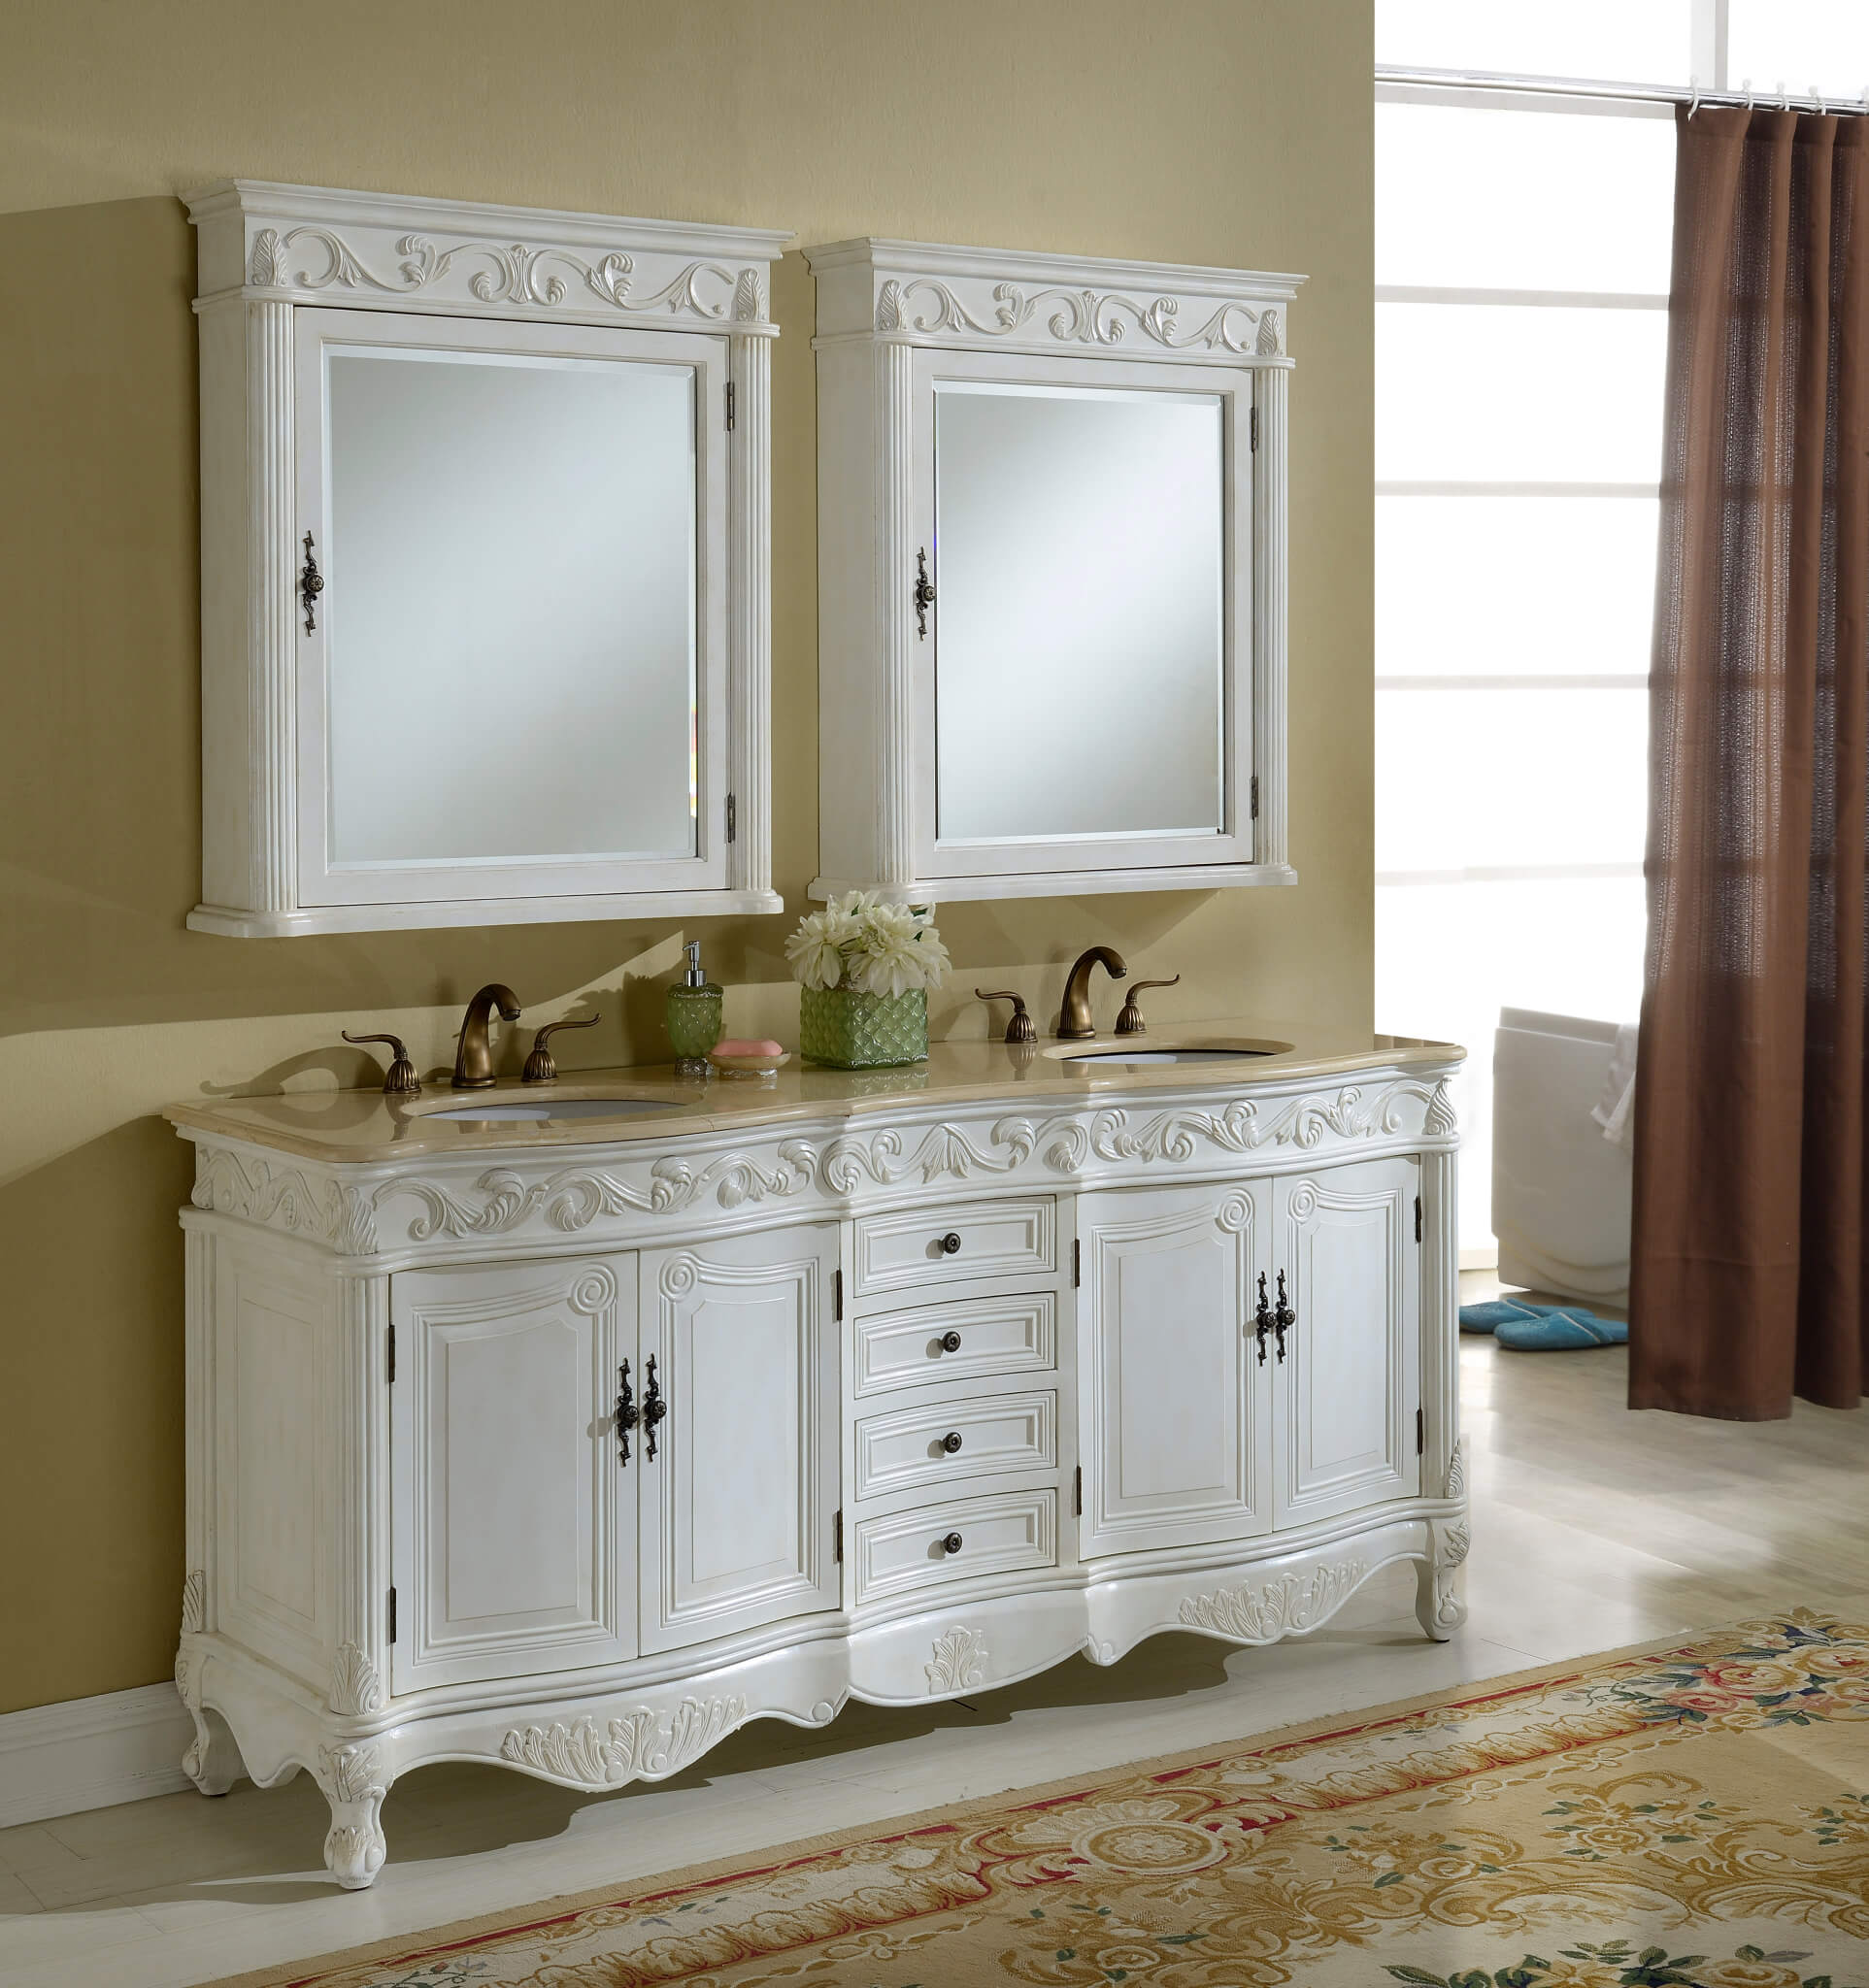 72u2033 Tuscany Antique White Double Sink Bathroom Vanity